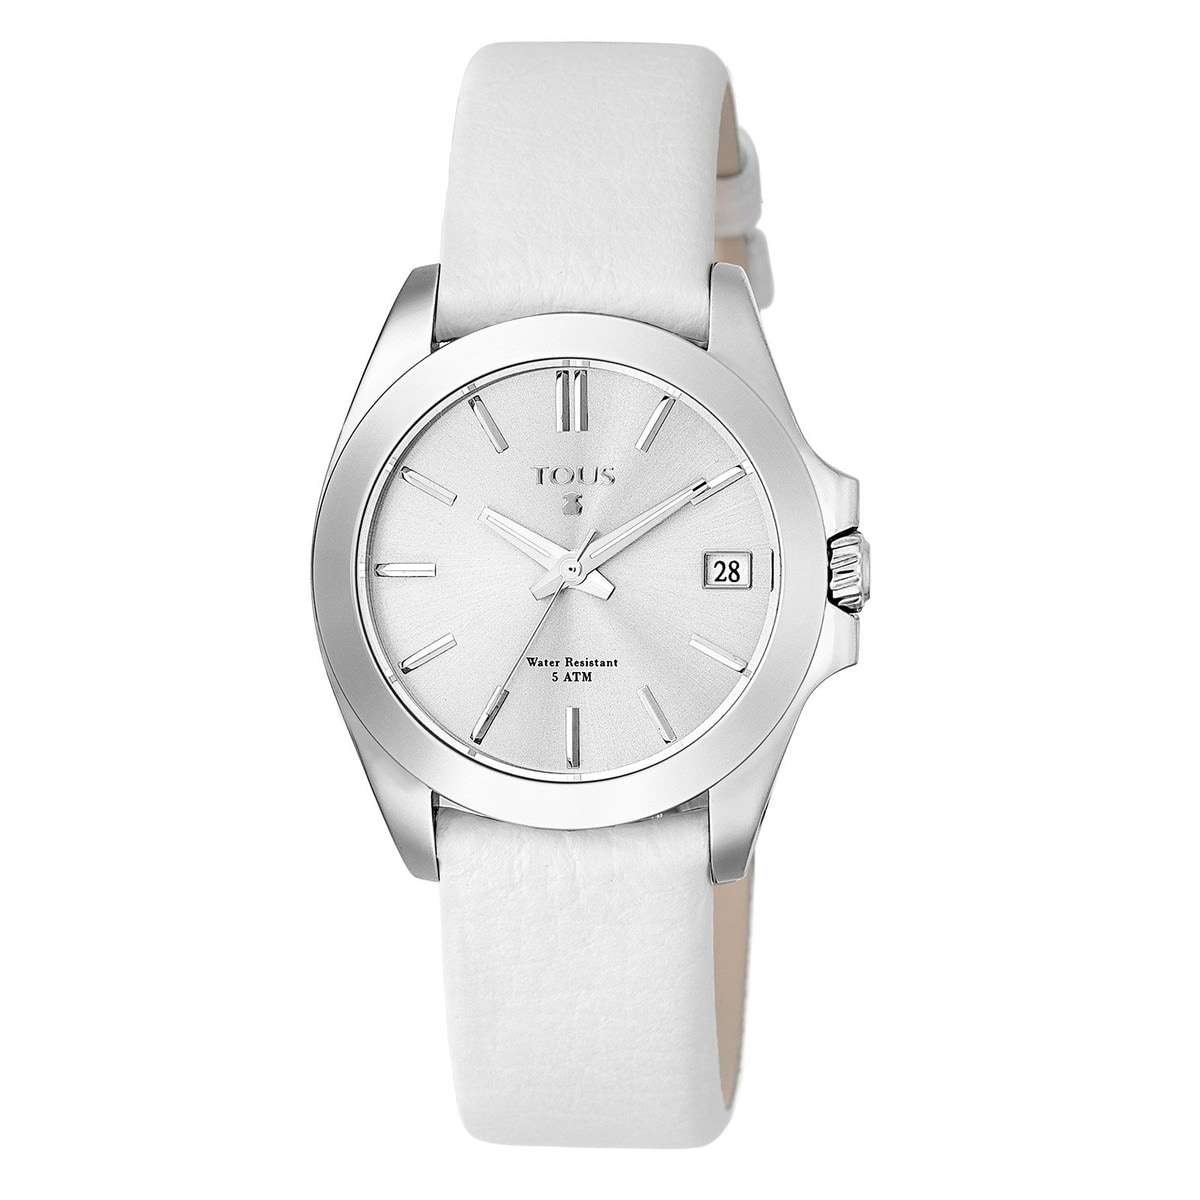 Steel Drive 34 Watch with ivory colored Leather strap